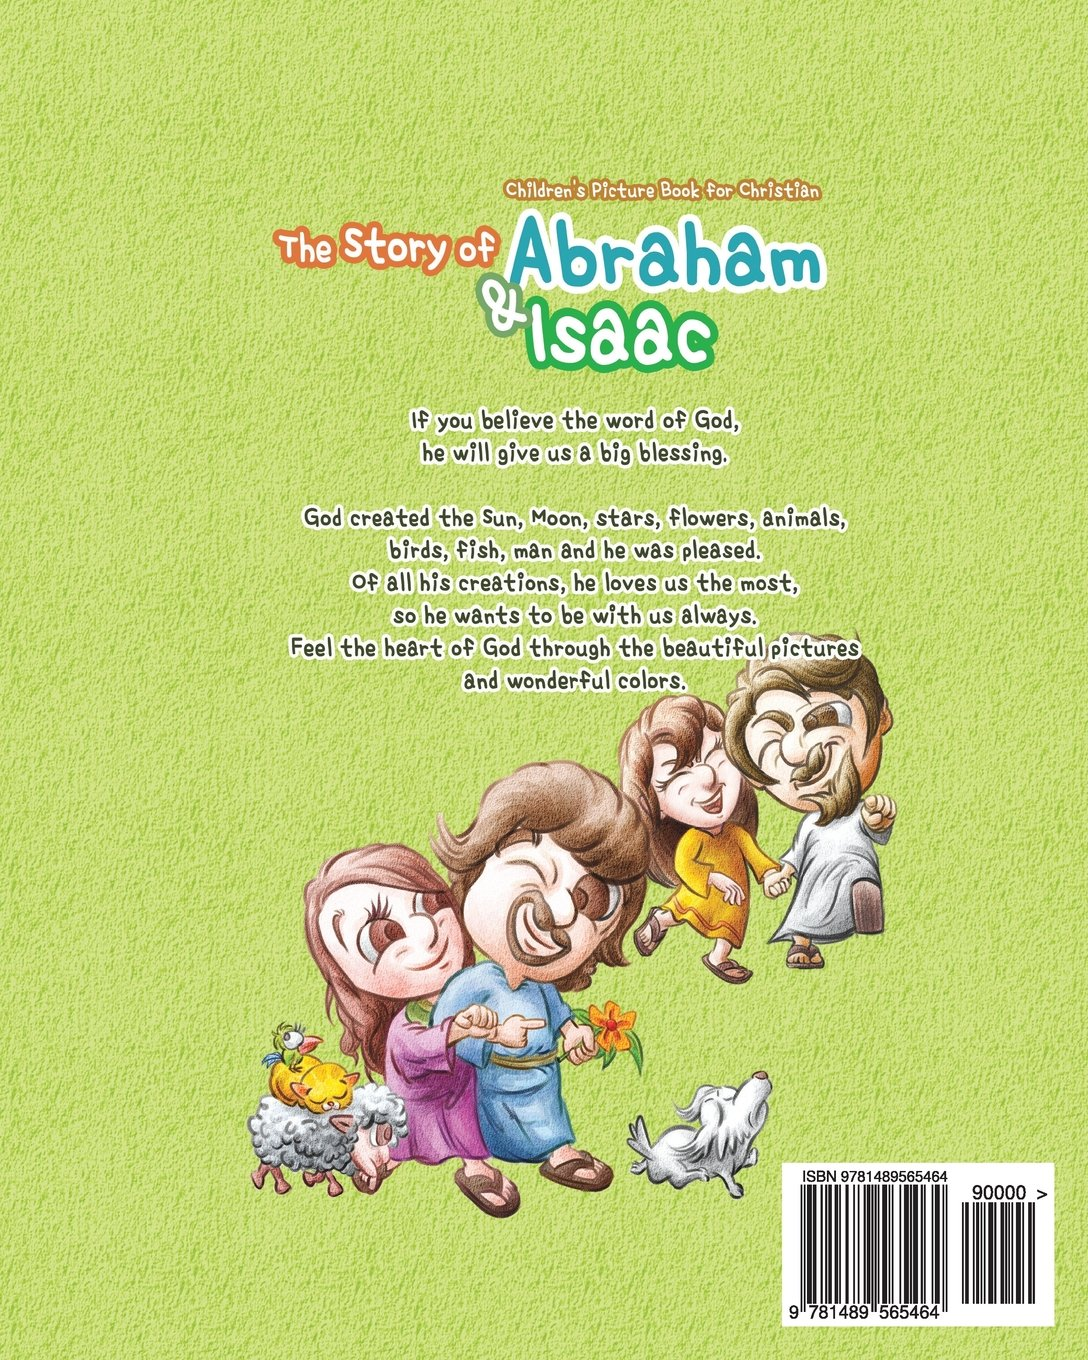 the story of abraham u0026 isaac children u0027s picture book for